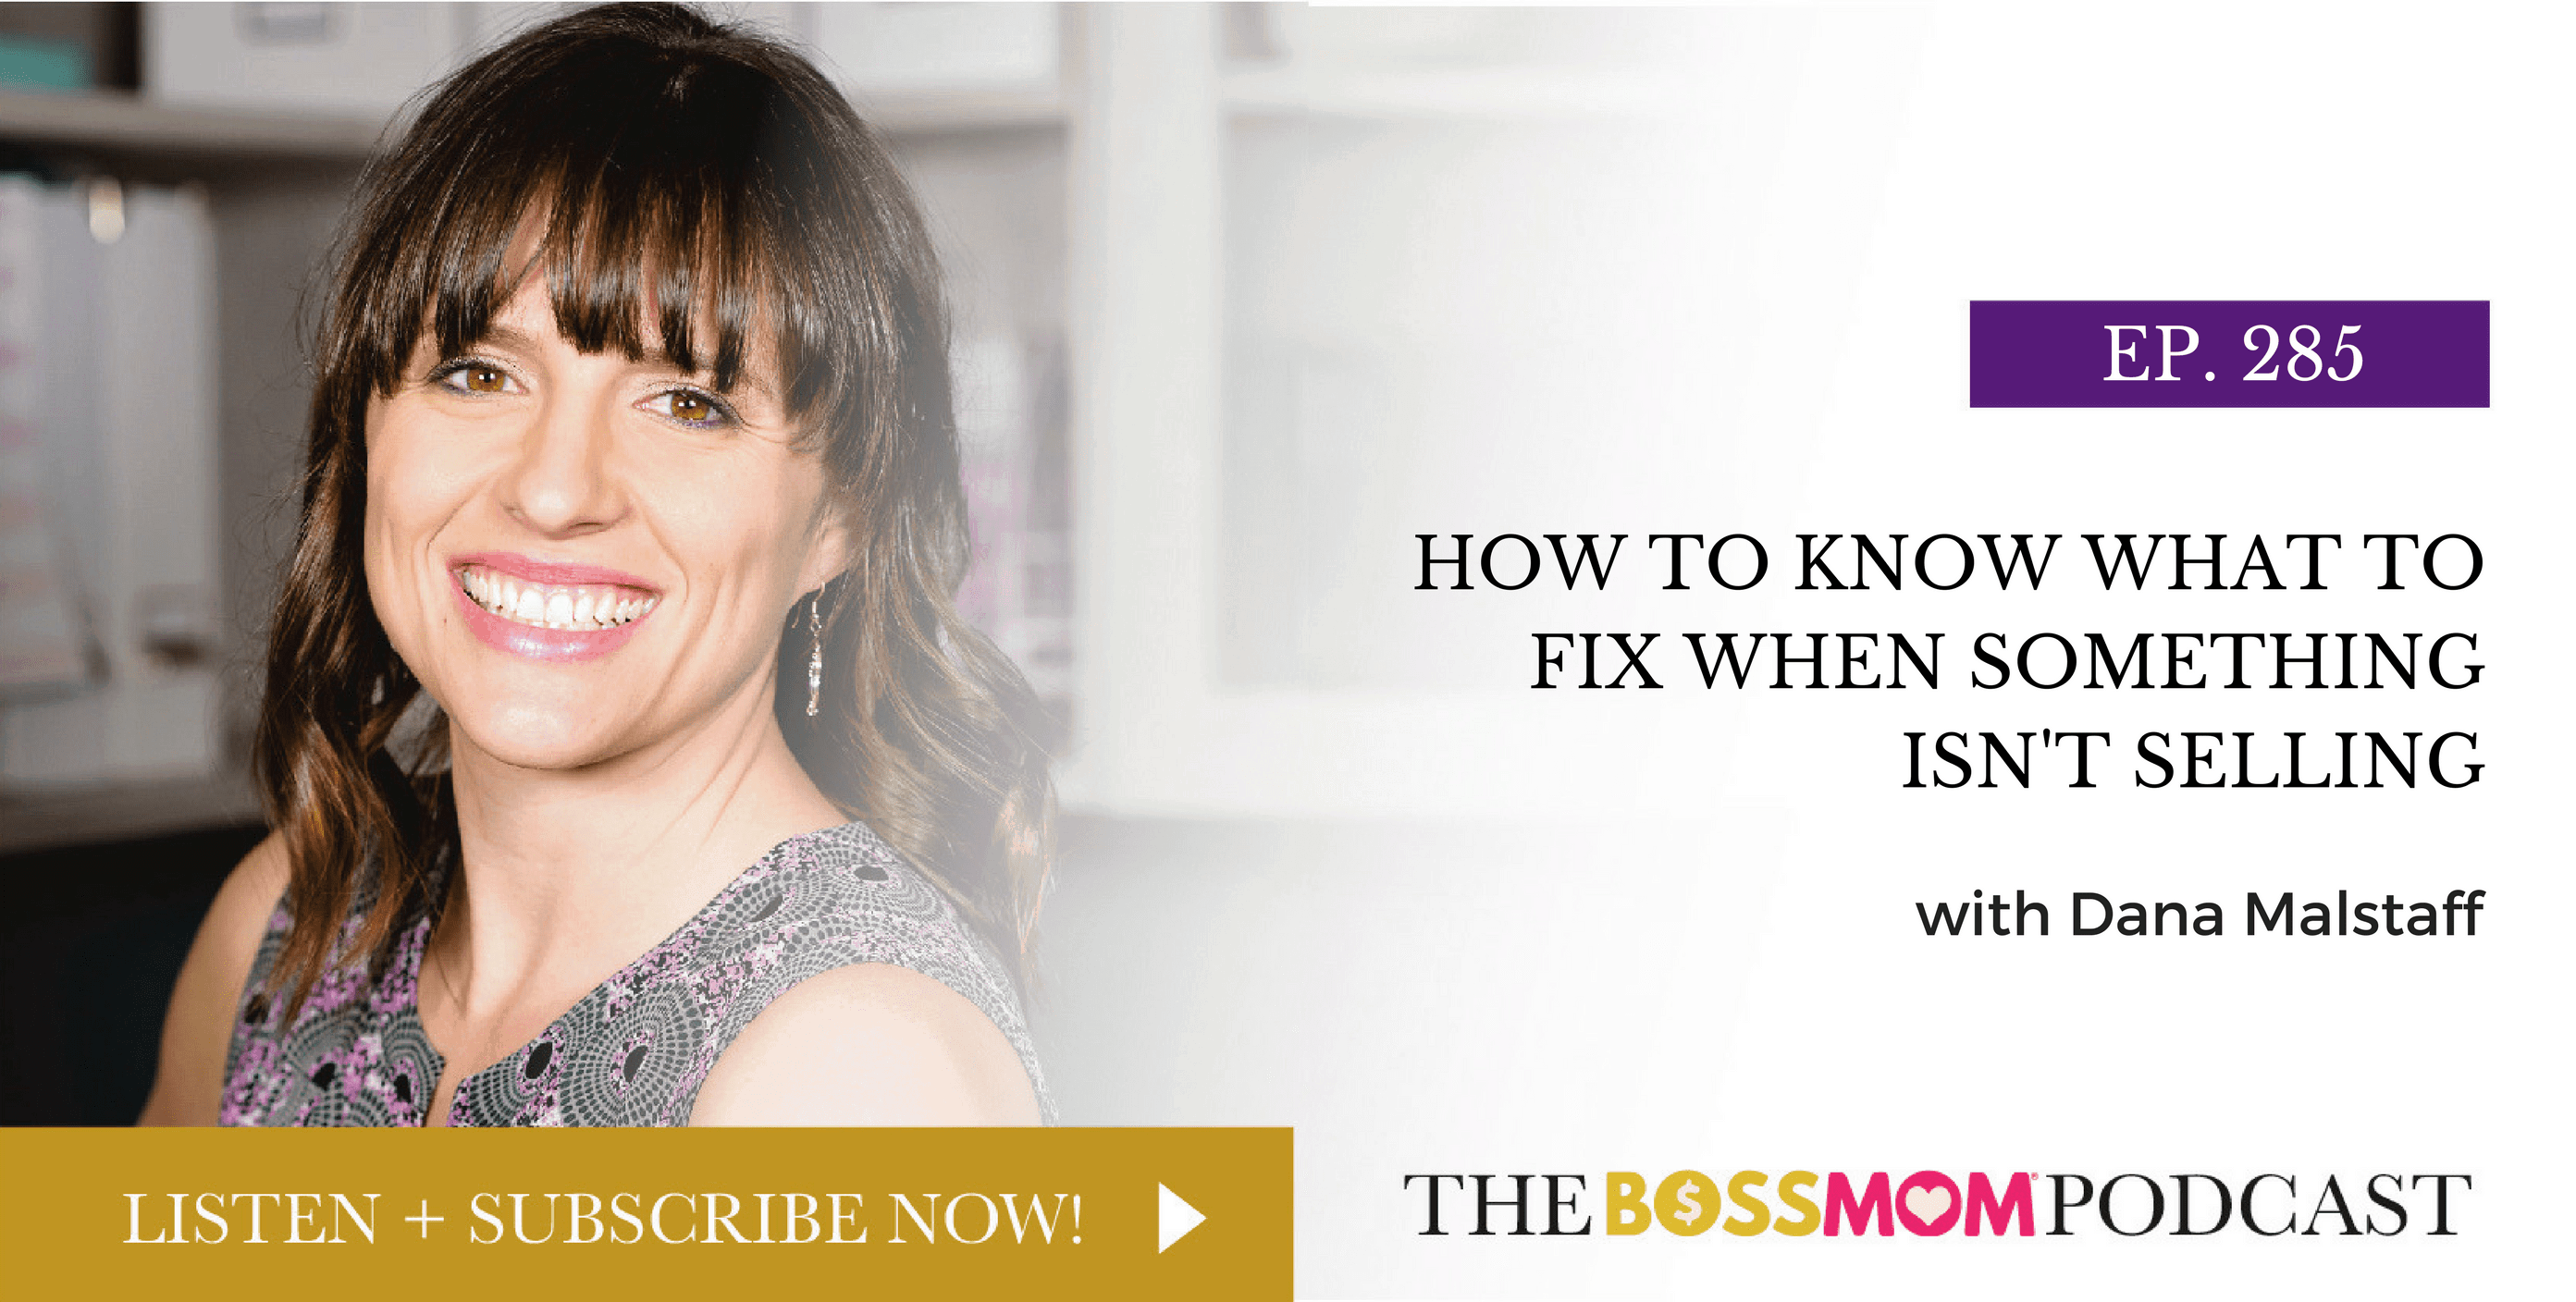 Episode 285: How to Know What to Fix When Something Isn't Selling